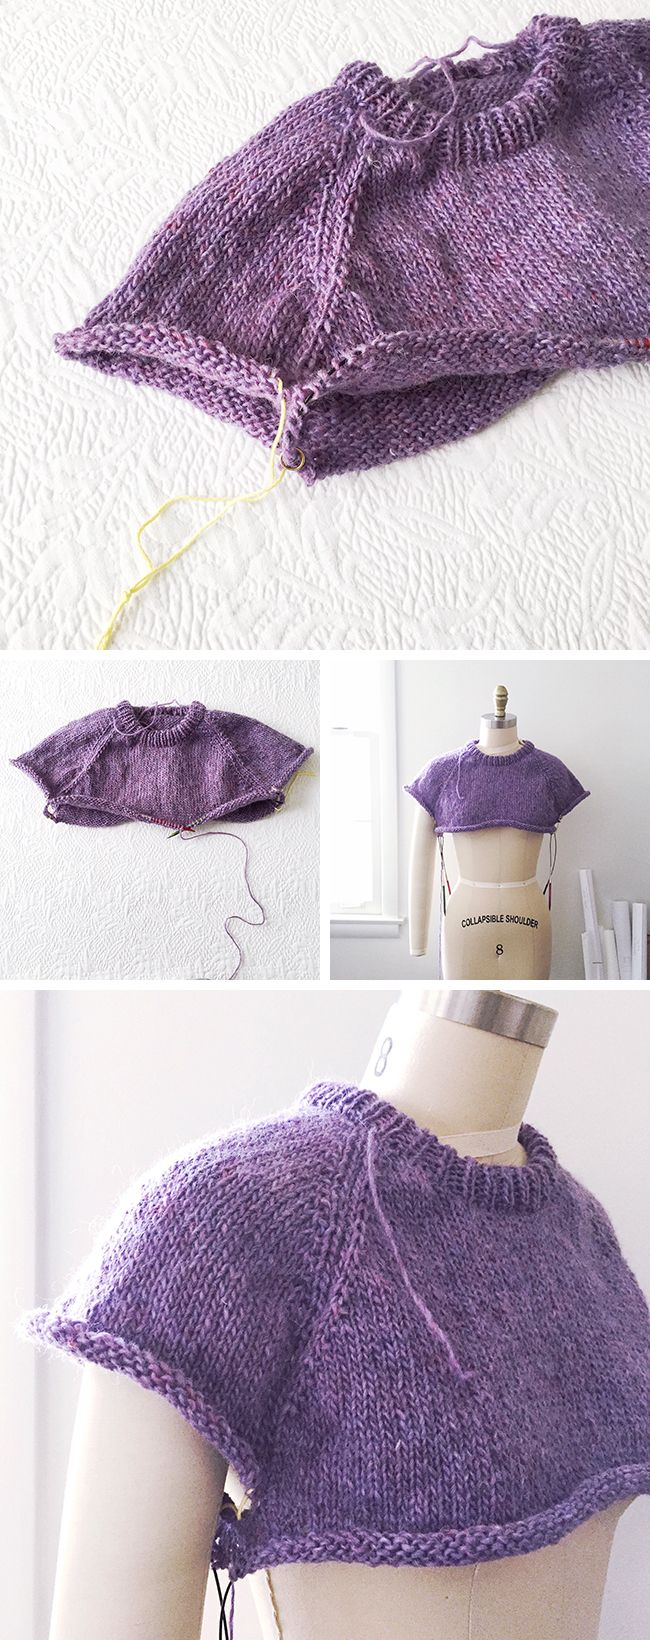 Knitting Sweater Tutorial : Best images about knit stitches techniques and